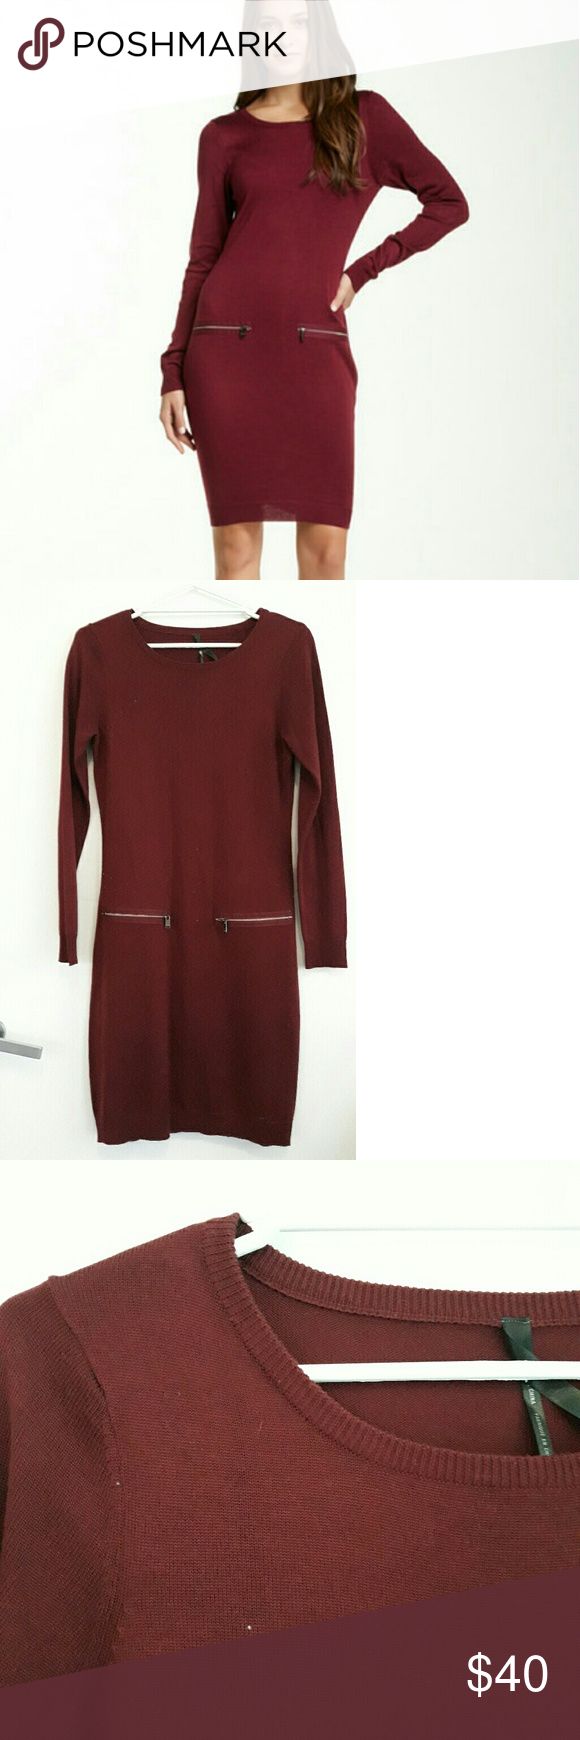 Marc Maroon Sweater Dress Maroon Sweater dress, above the knee. Two zip pockets at the hip on the front (not real pockets). Very comfortable and classy. Andrew Marc Dresses Long Sleeve